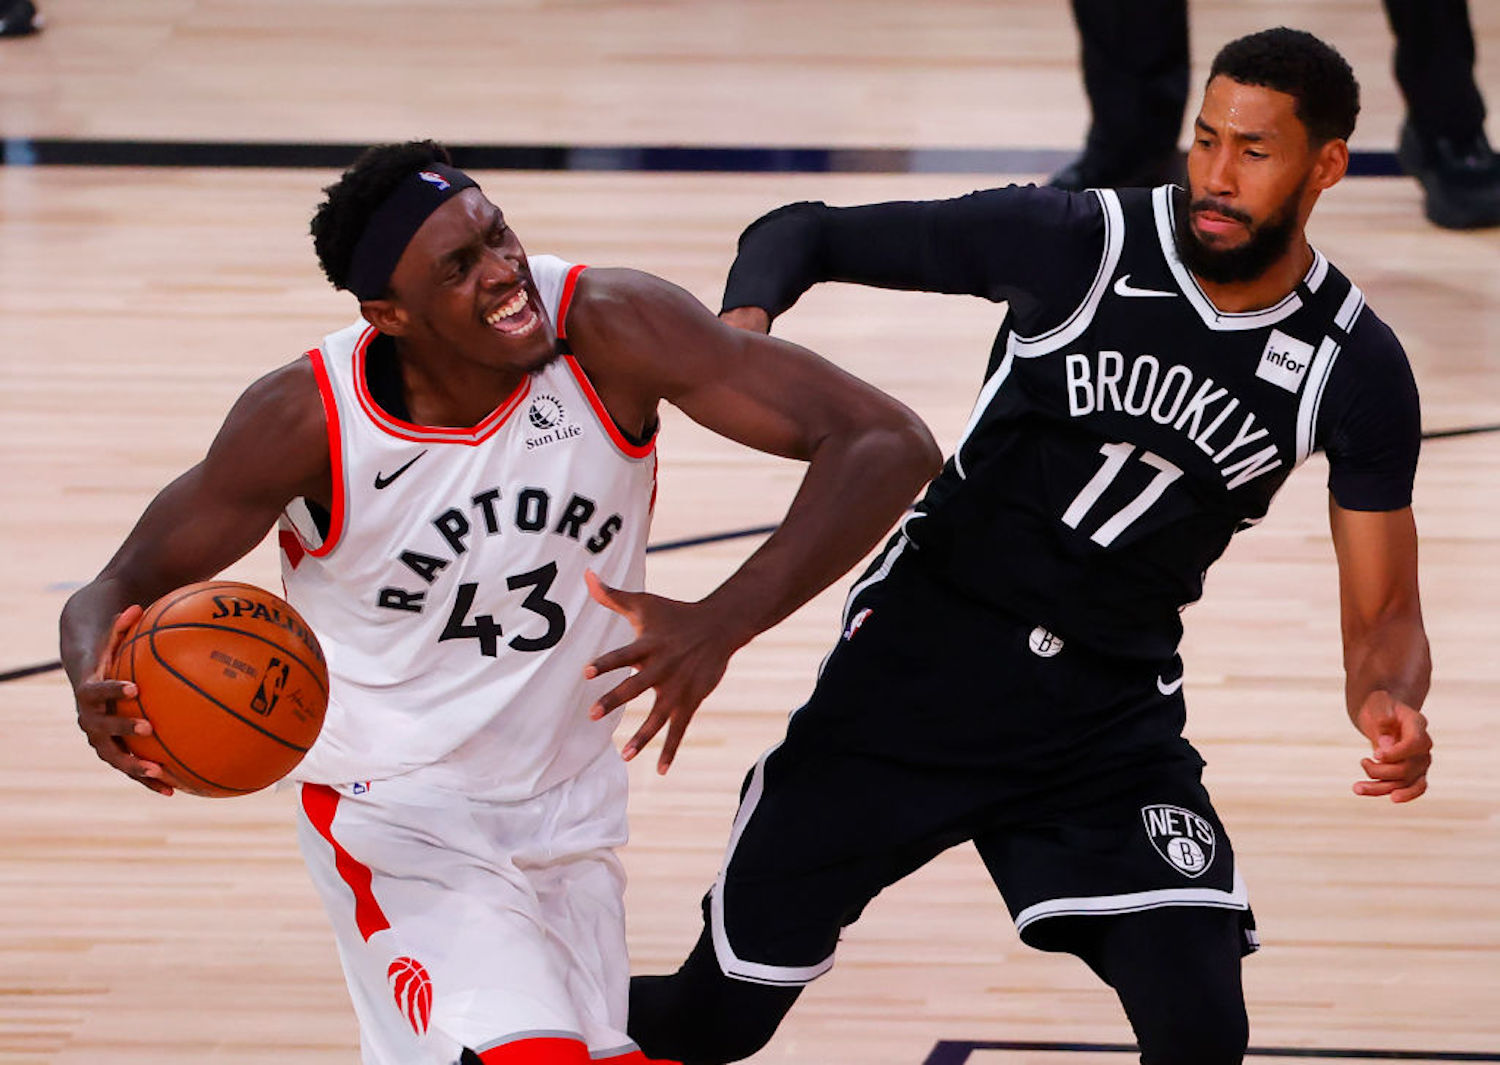 Pascal Siakam was thought to be a budding superstar for the Toronto Raptors, but his recent performances might tell a different story.